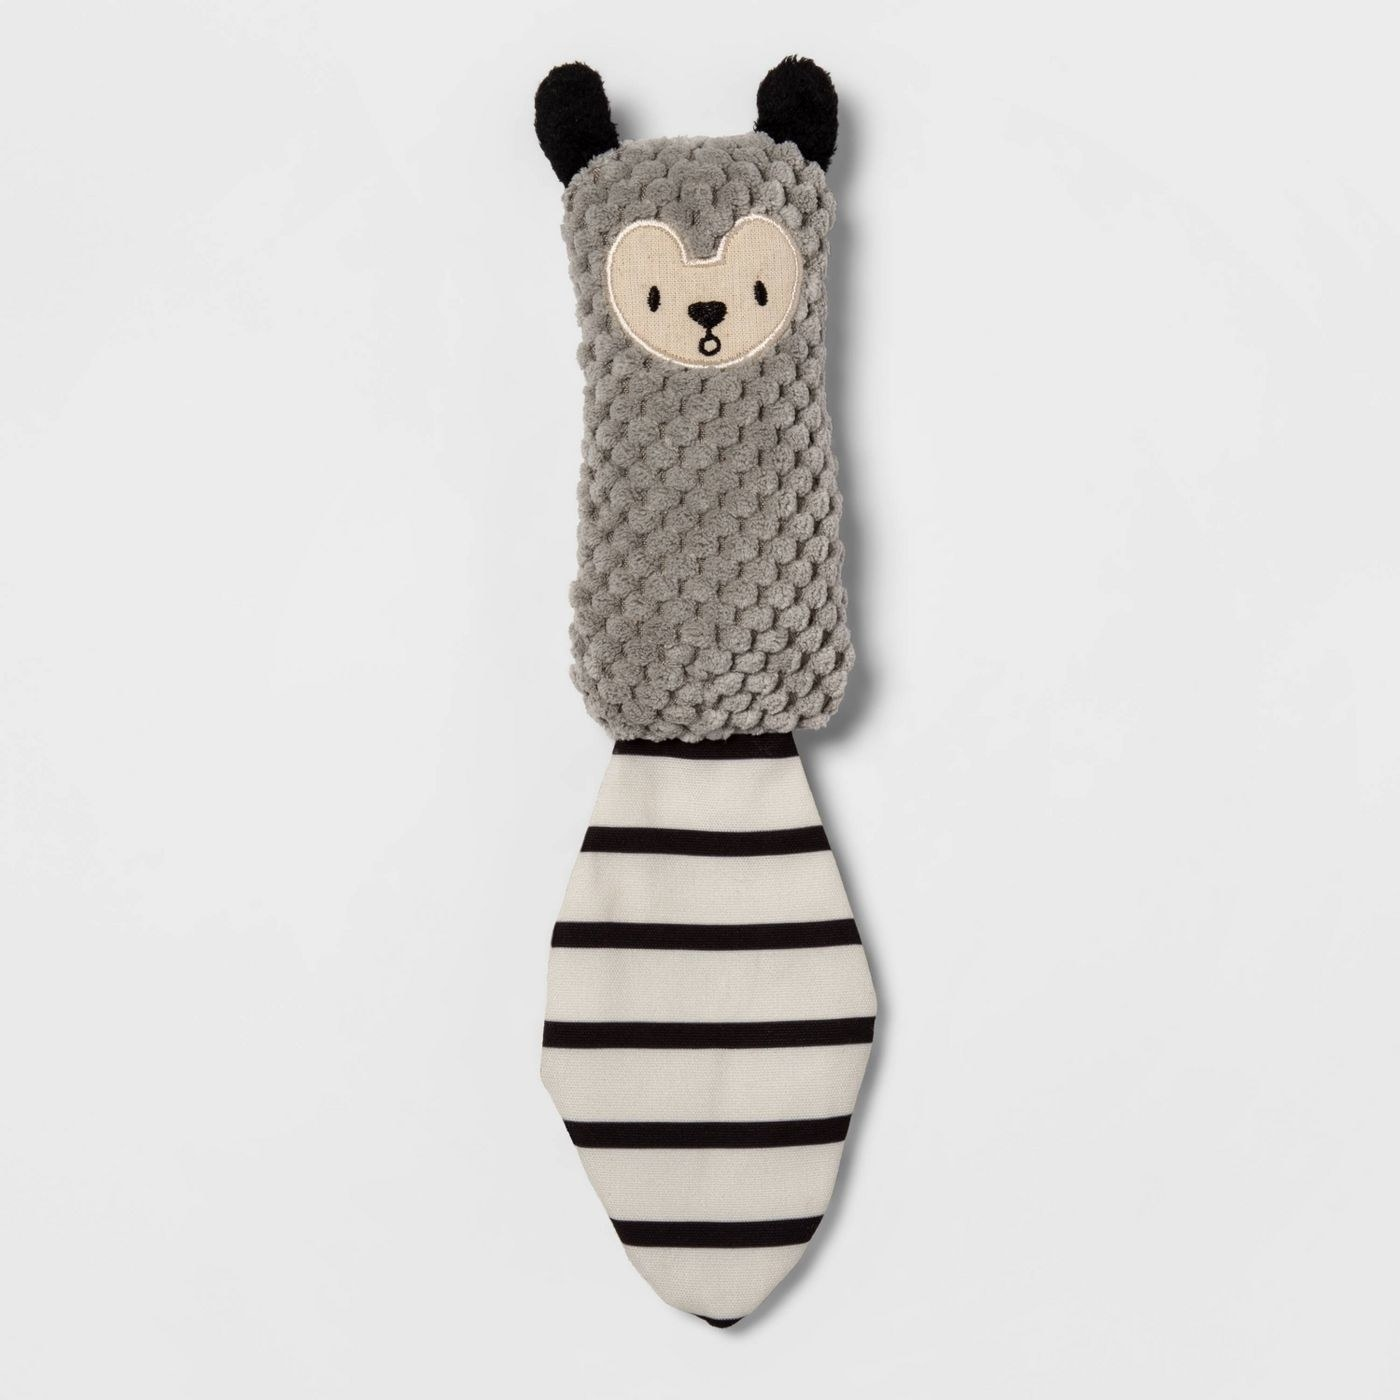 The soft gray toy, which has a white tail with black strips